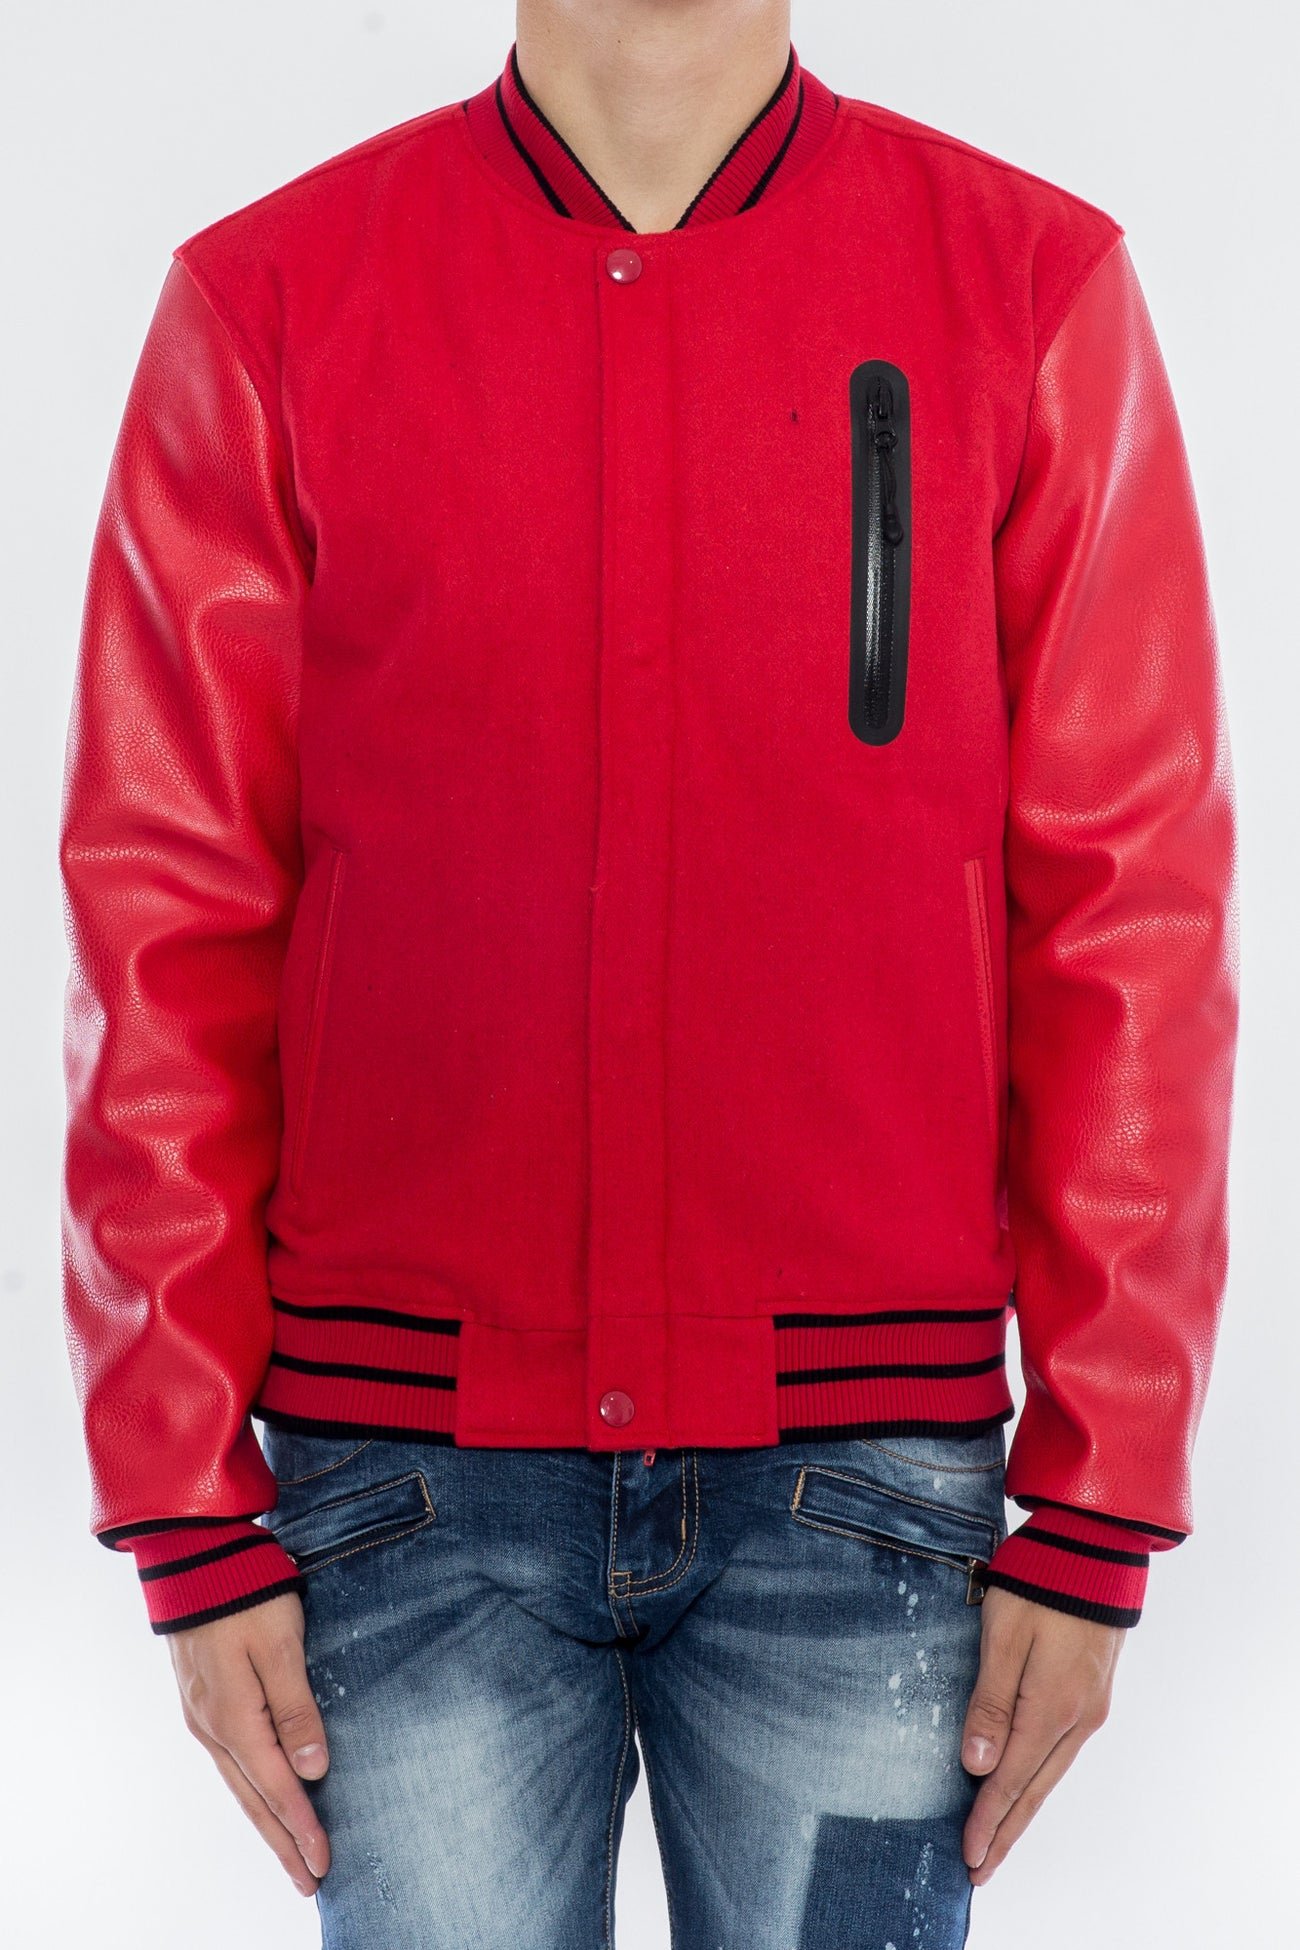 SEARCH AND DESTROY BOMBER VARSITY JACKET H6051112-RED - cosign1975